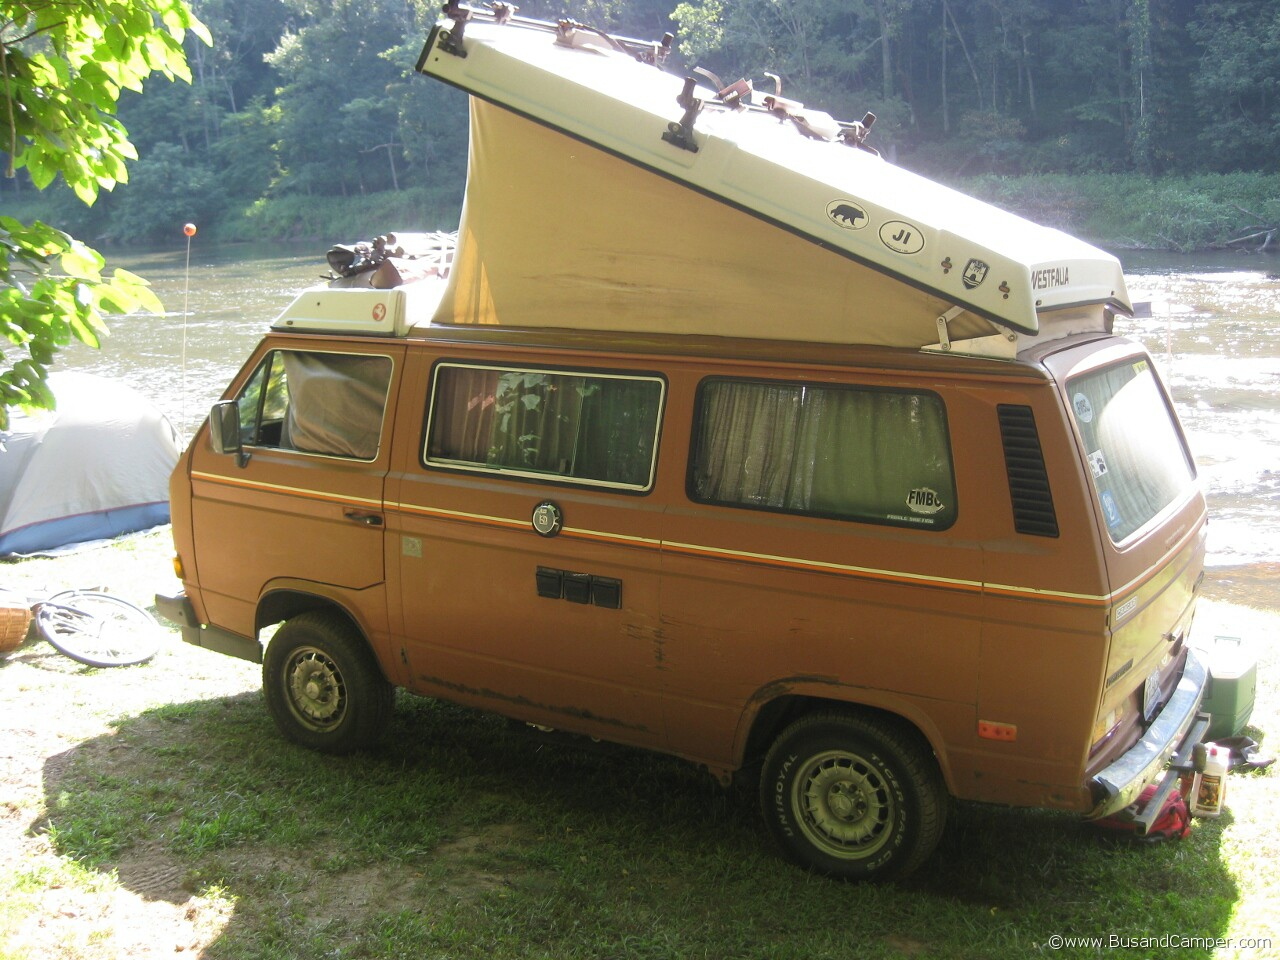 Loaded and well used camper